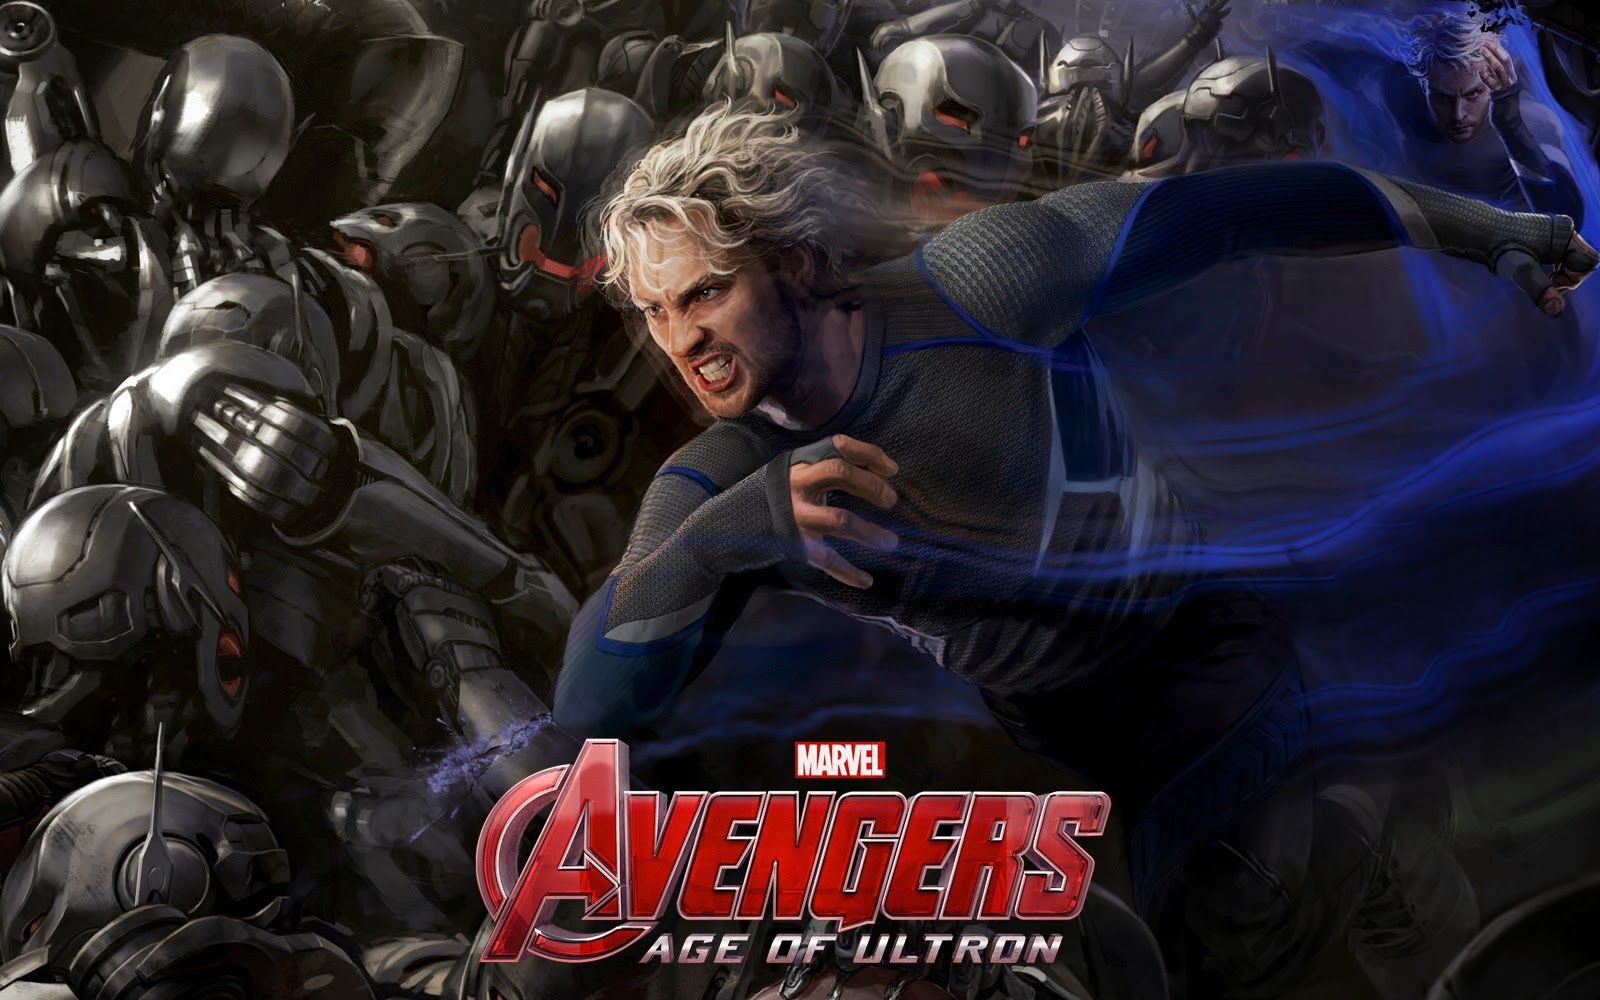 avengers age of ultron 2015 wallpaper kfzoom